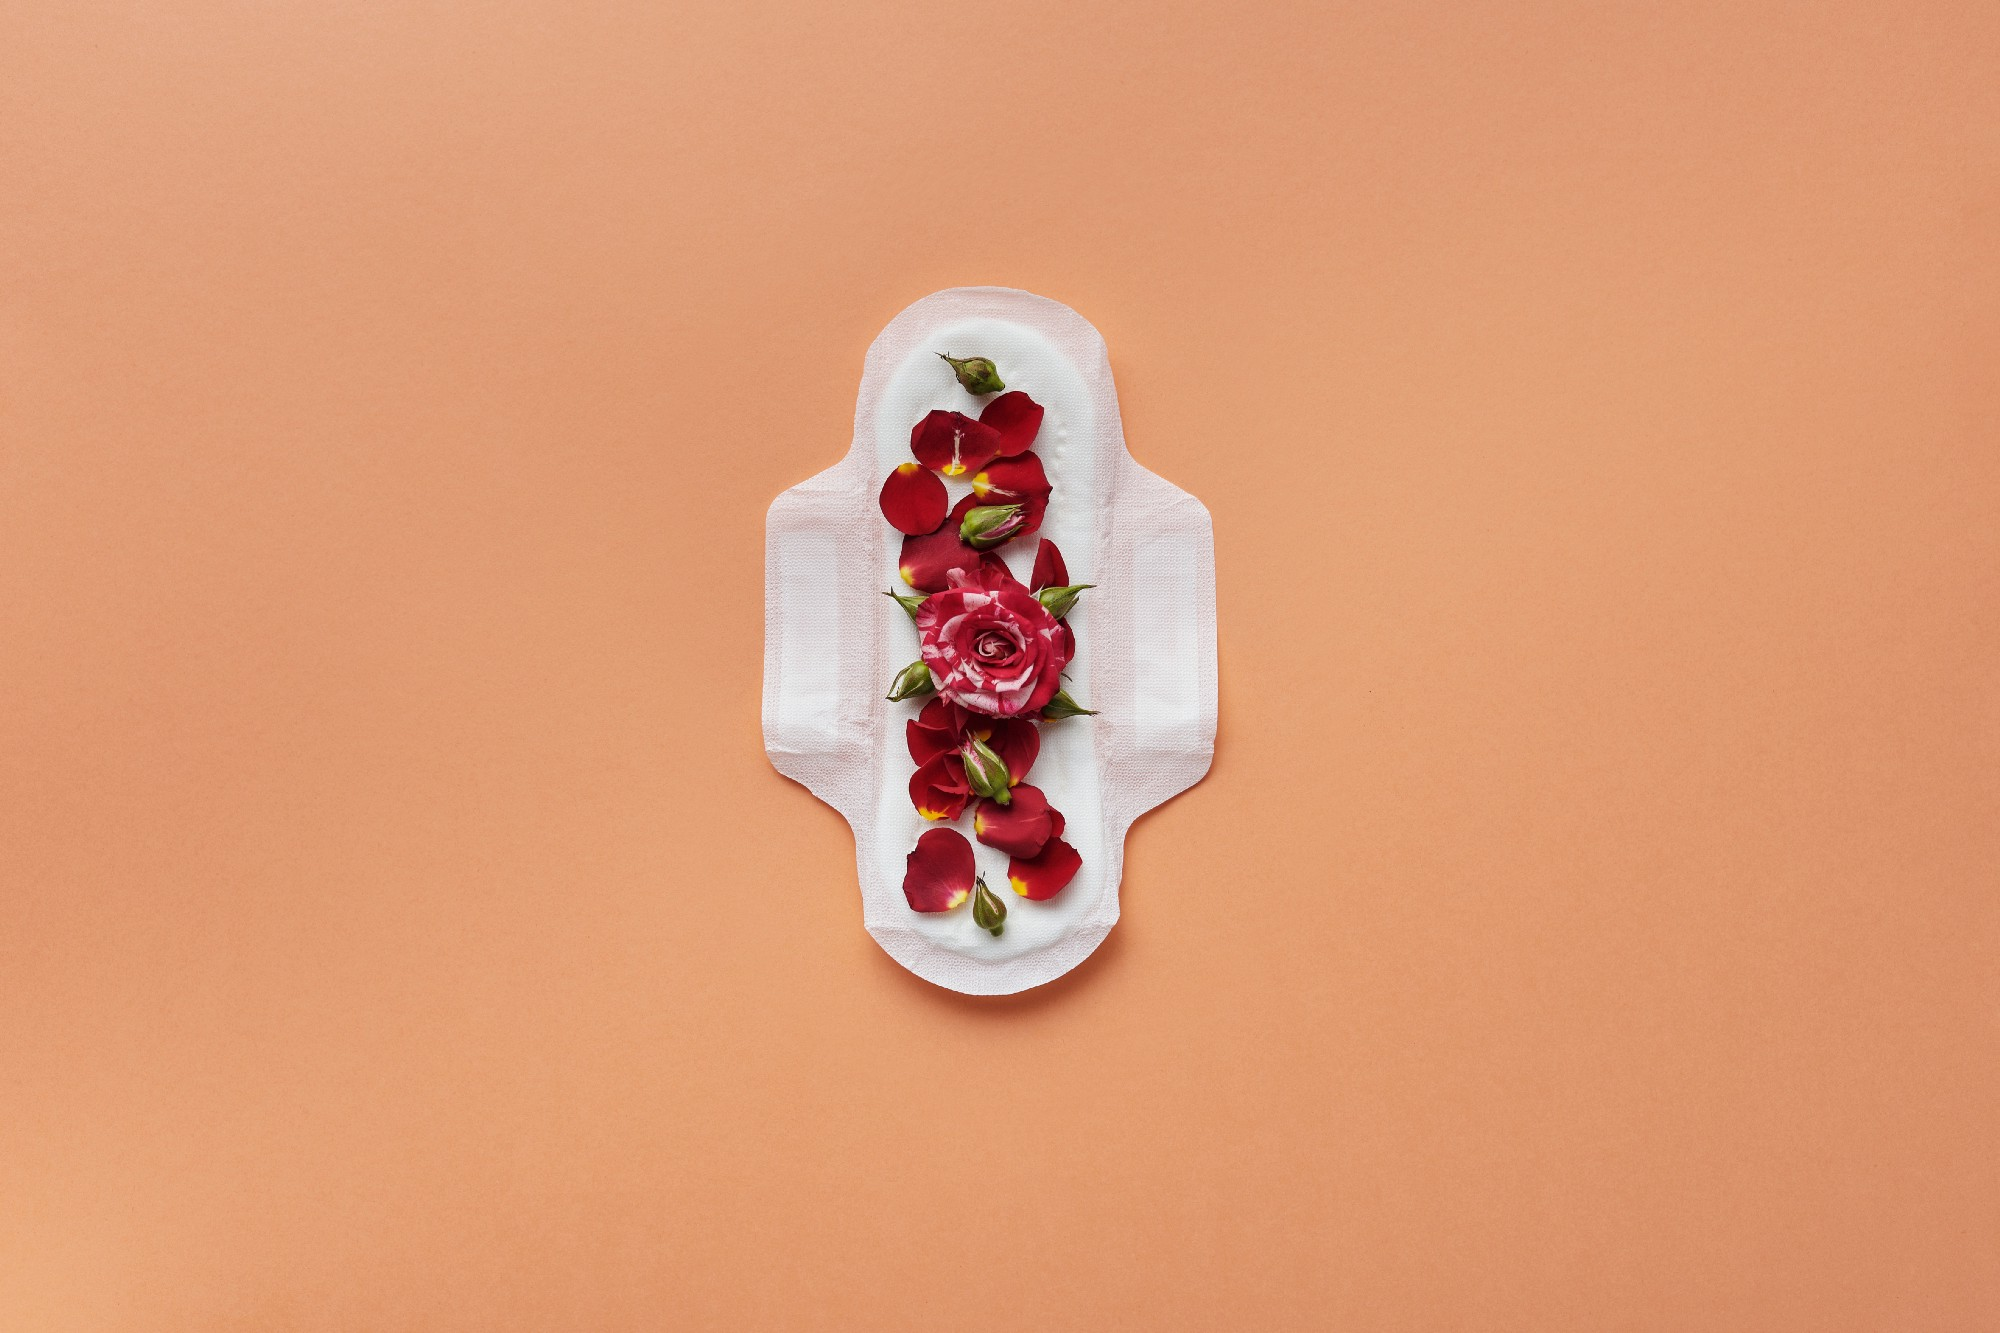 Woman's feminine hygiene product with rose petals